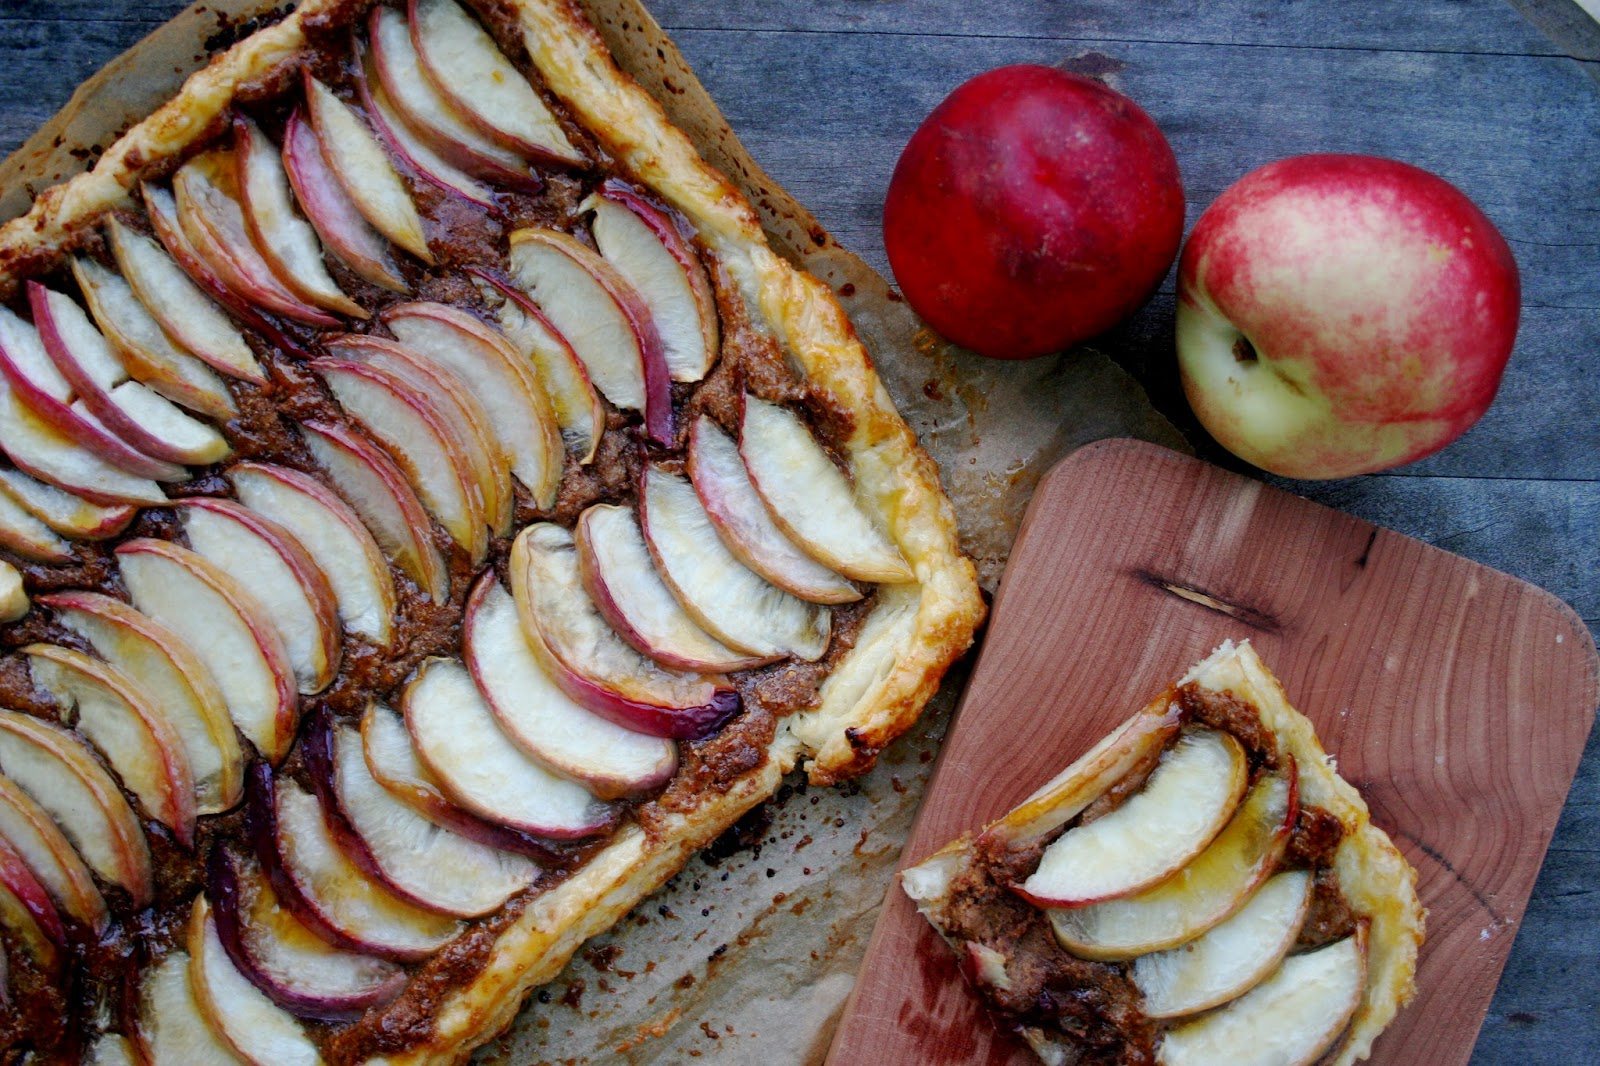 White Nectarine Frangipane Tart with Homemade Puff Pastry